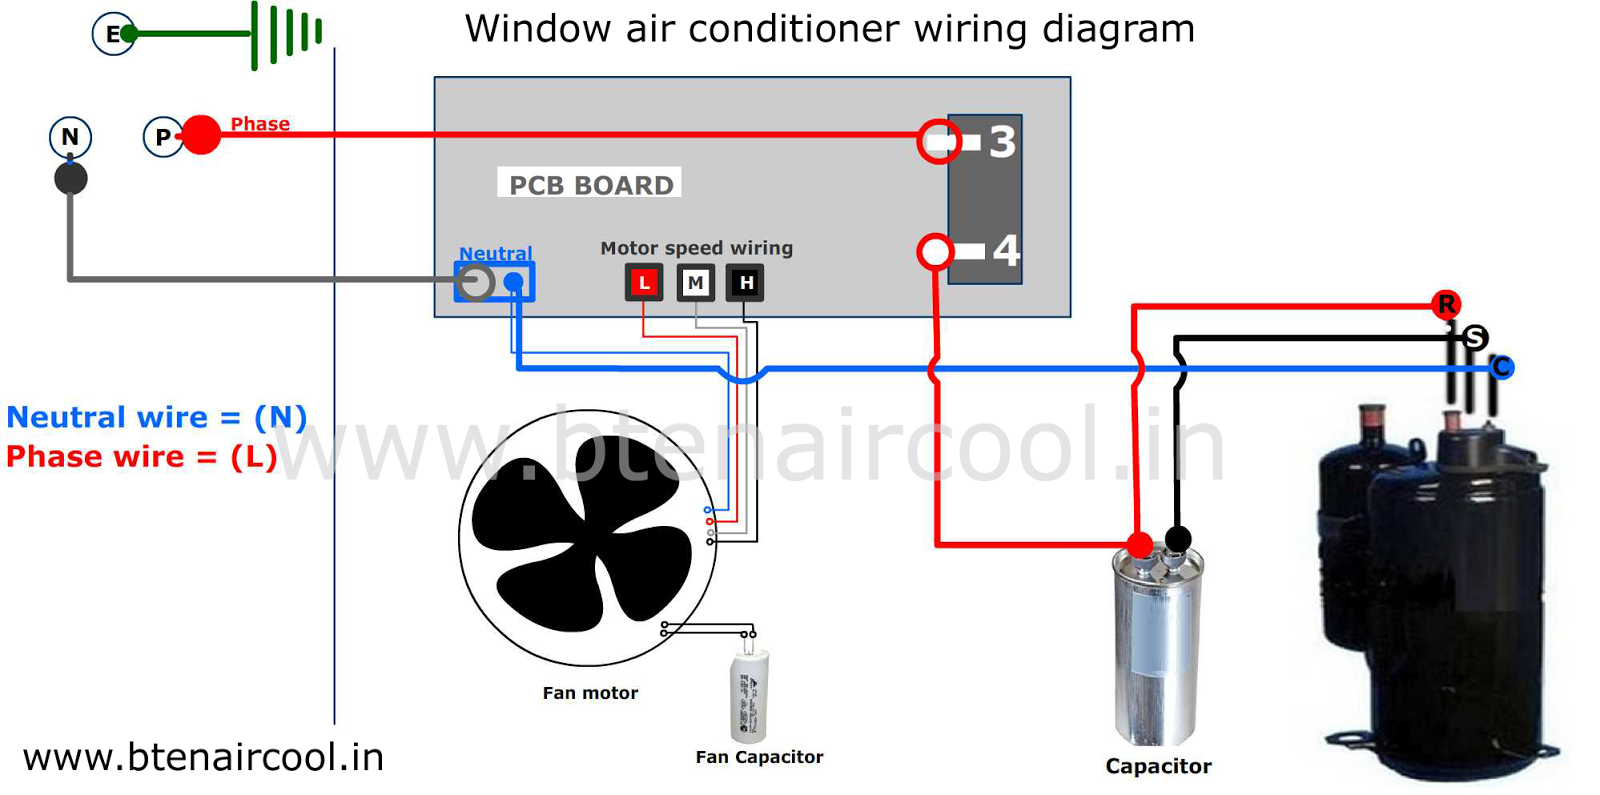 hight resolution of 2 window air conditioner wiring diagram